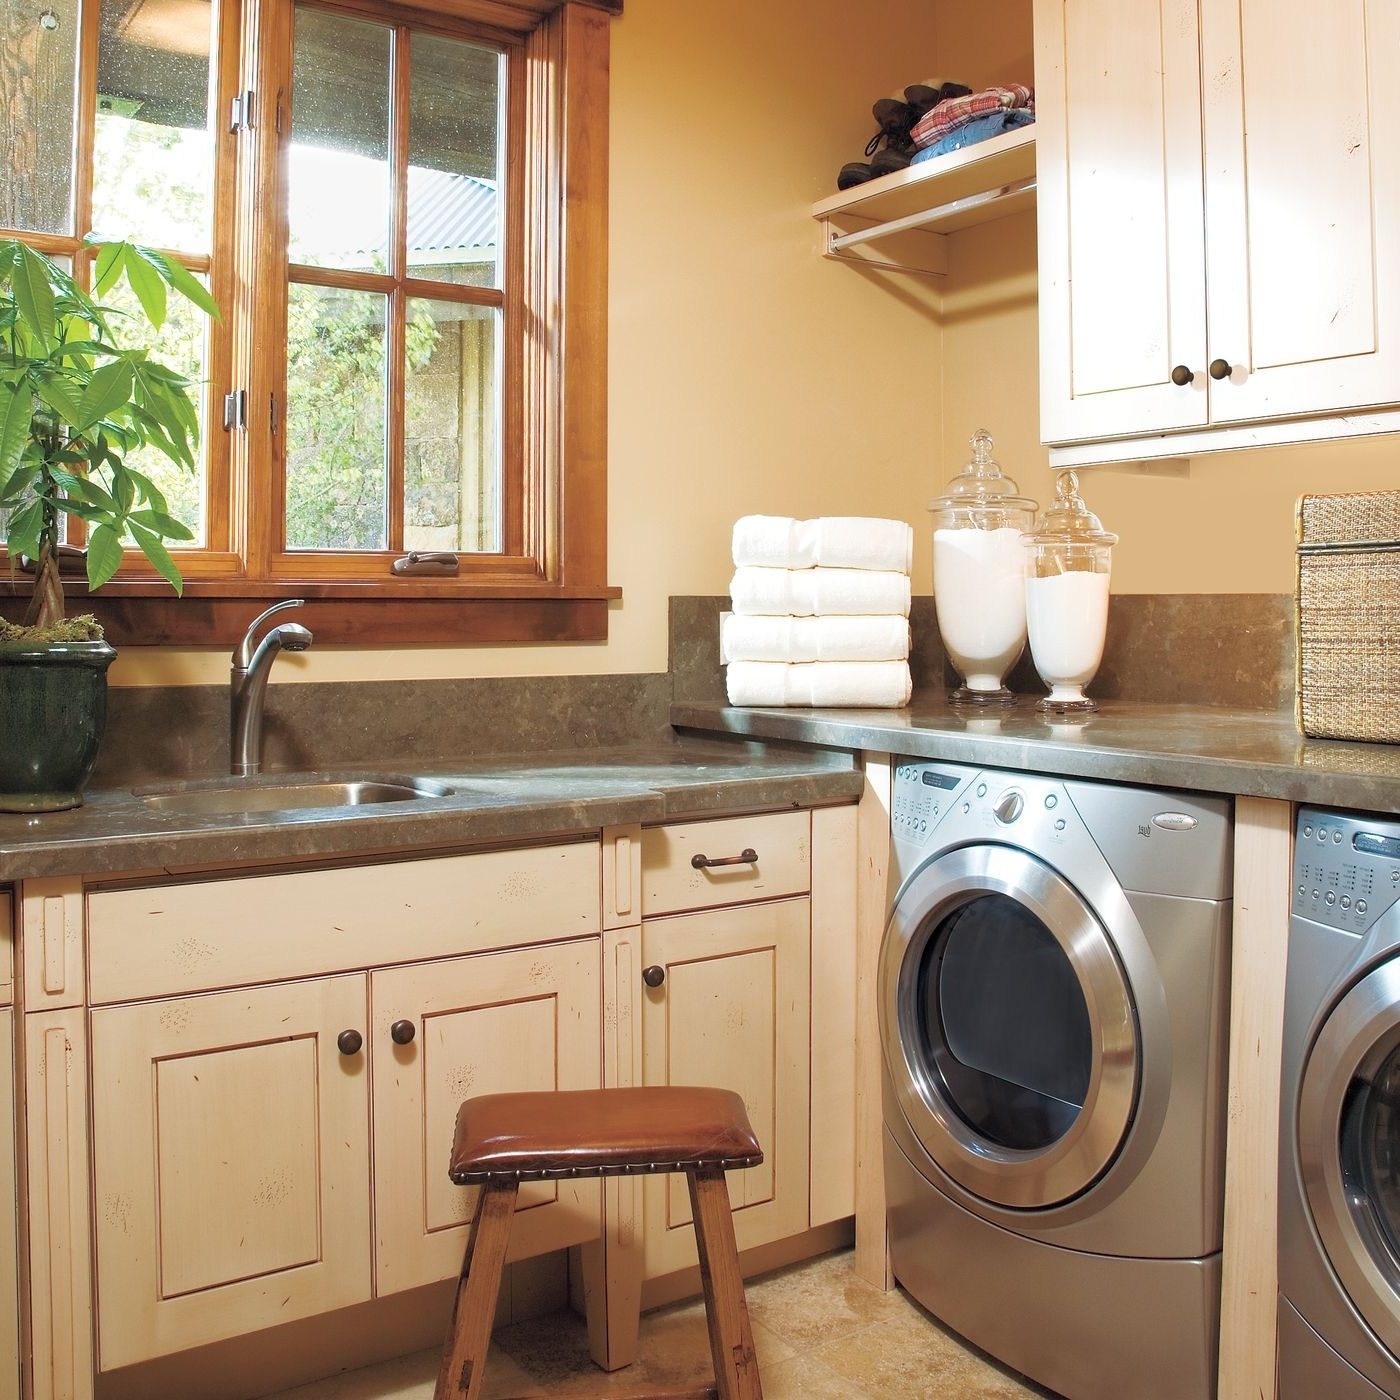 27 Ideas For A Fully Loaded Laundry Room This Old House Designs For Laundry Room Bathroom Combination